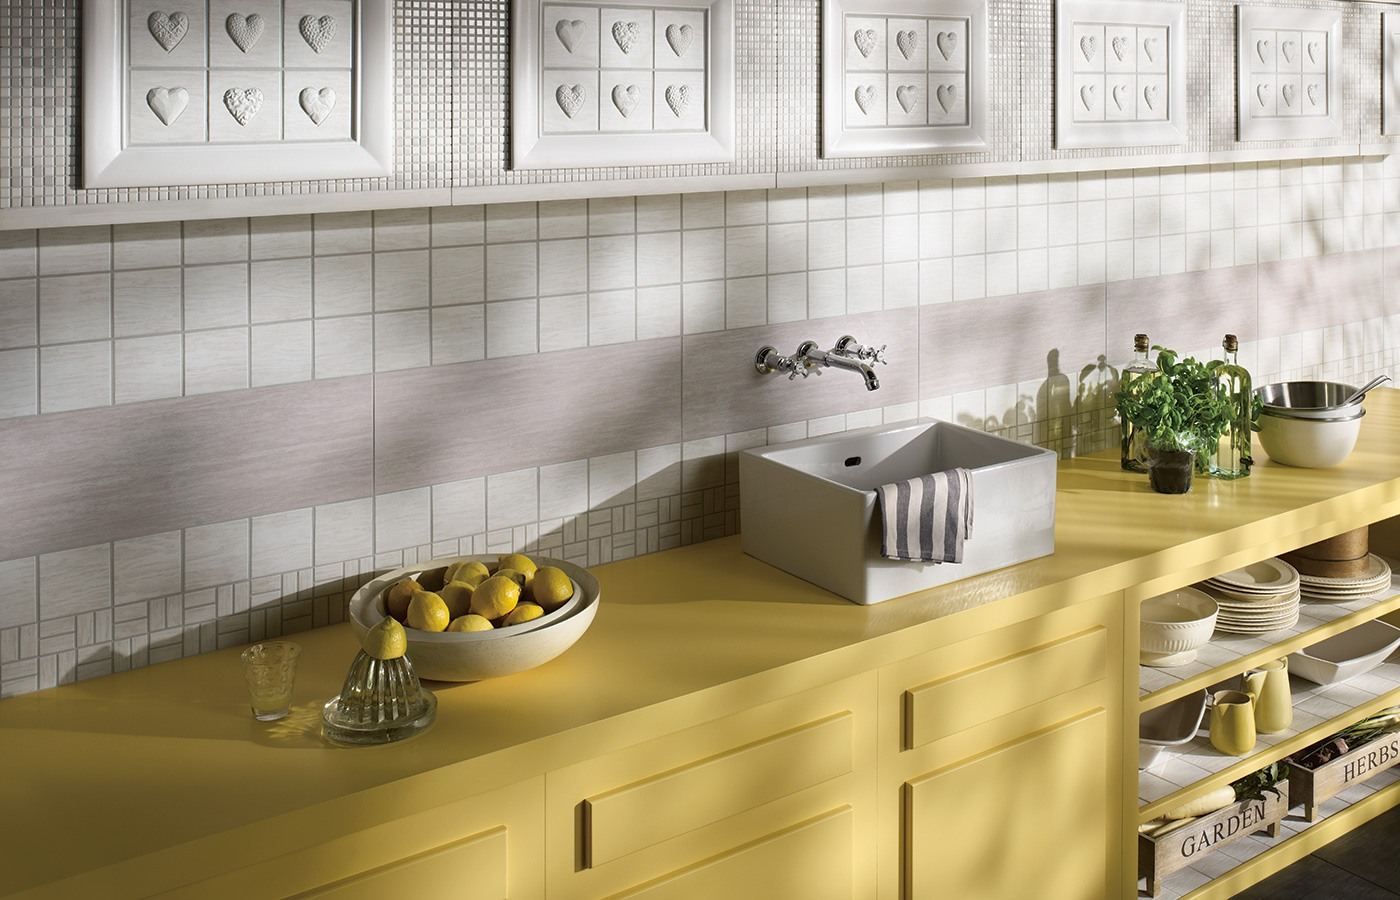 Kitchen Splashback Tile: Best Design and Decoration Ideas. Wooden kitchen cabinets and Provence styled sink